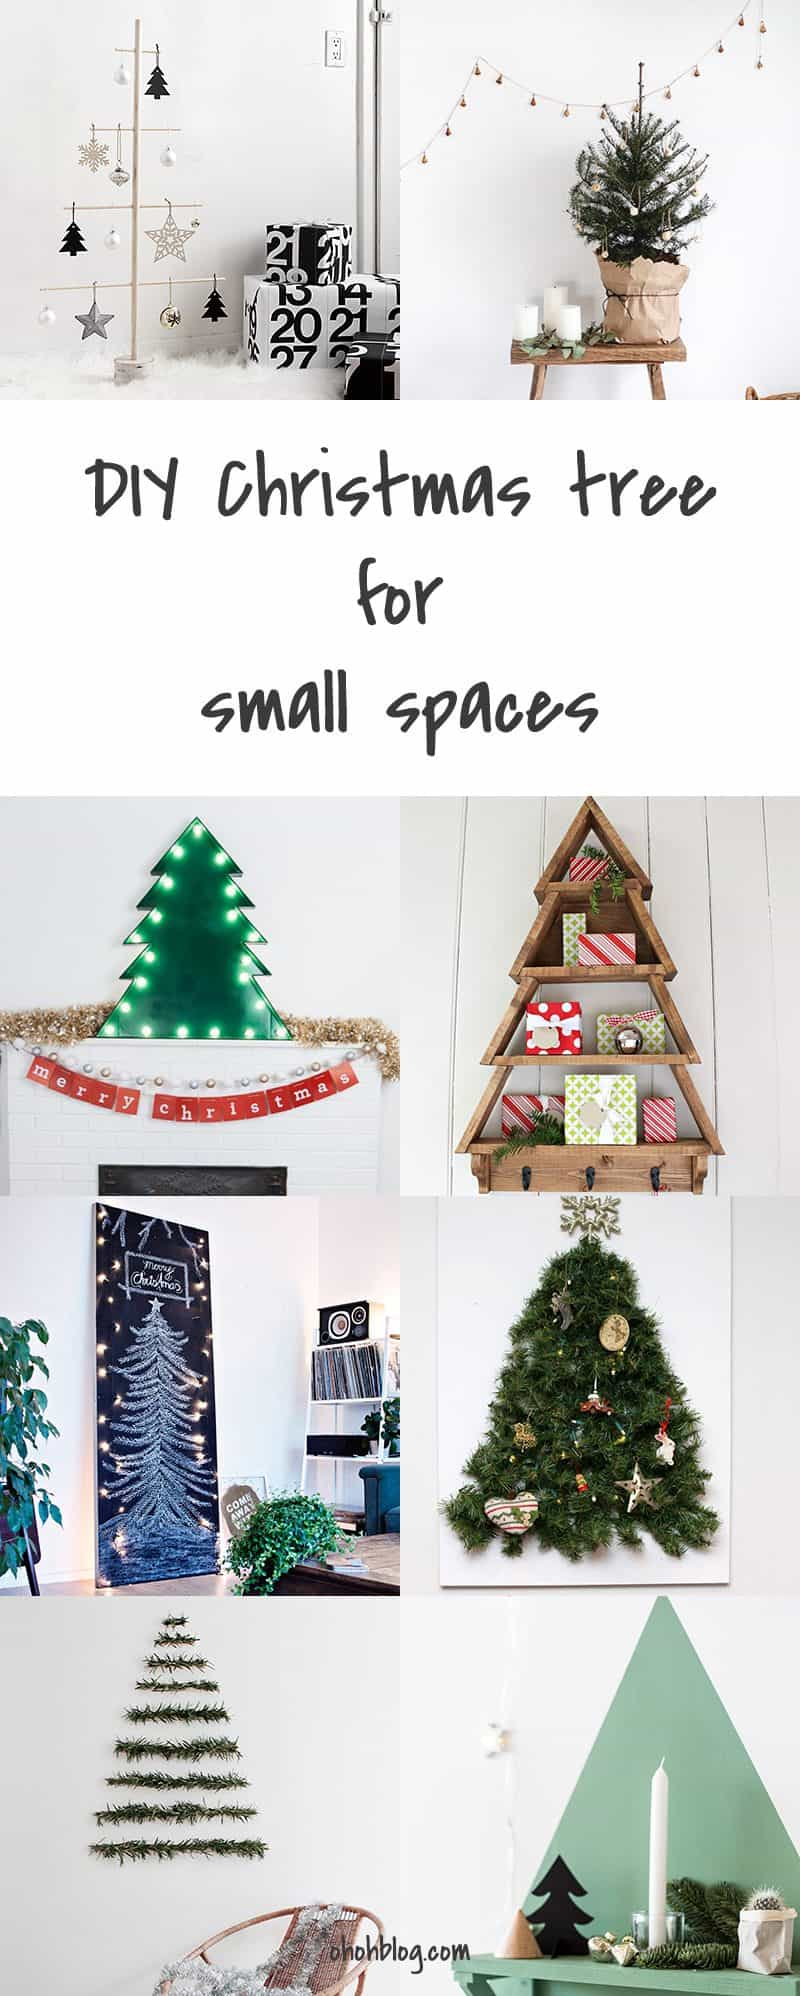 Diy christmas tree for small spaces ohoh blog - Diy for small spaces decor ...